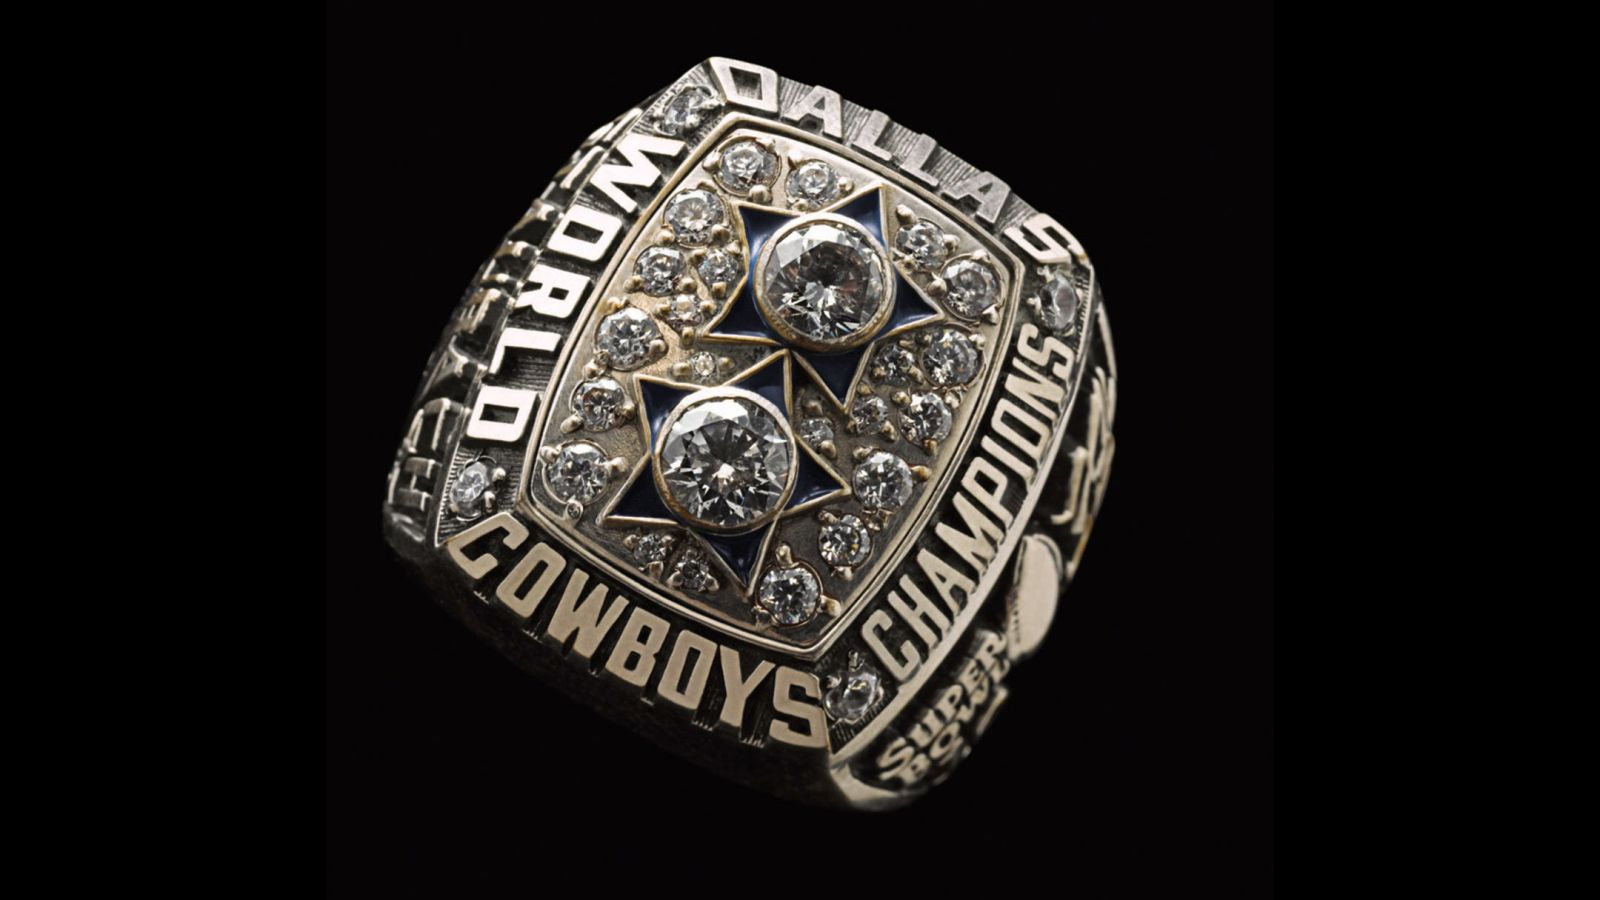 1977 Dallas Cowboys Super Bowl Championship Ring